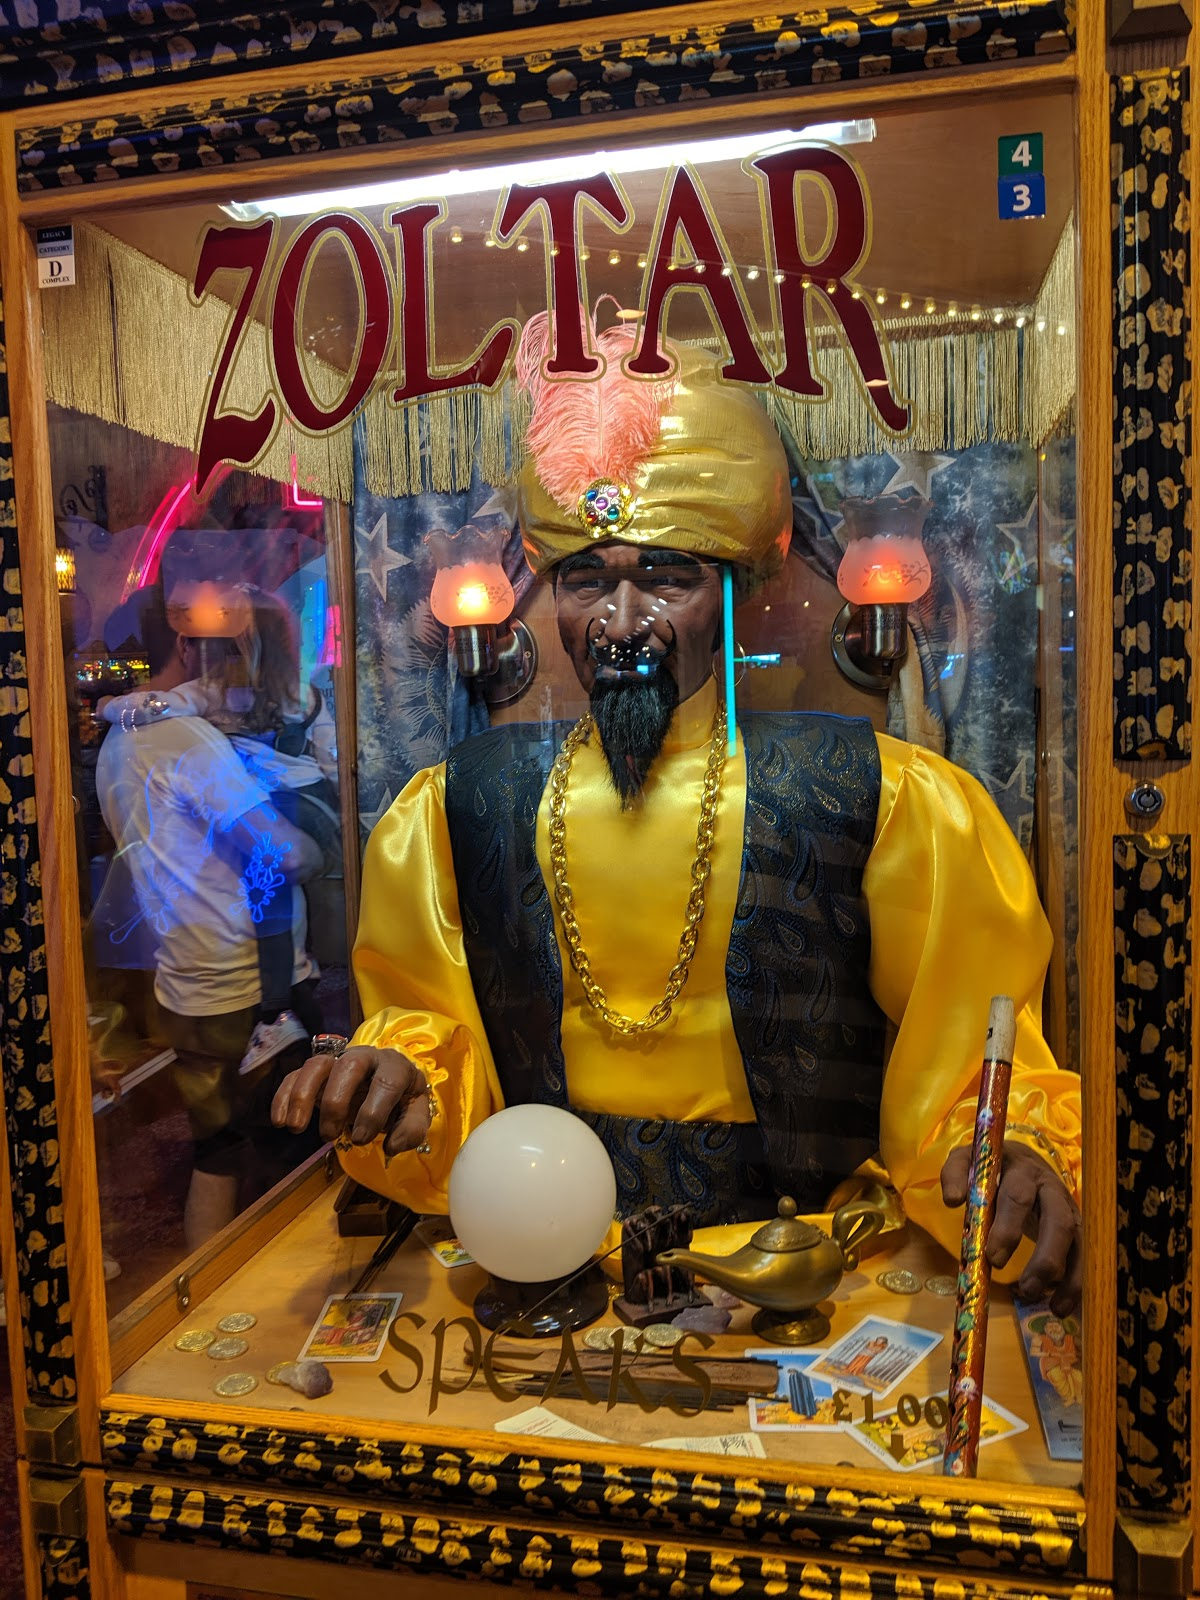 An A-Z Guide to Coral Island, Blackpool  - Zoltar